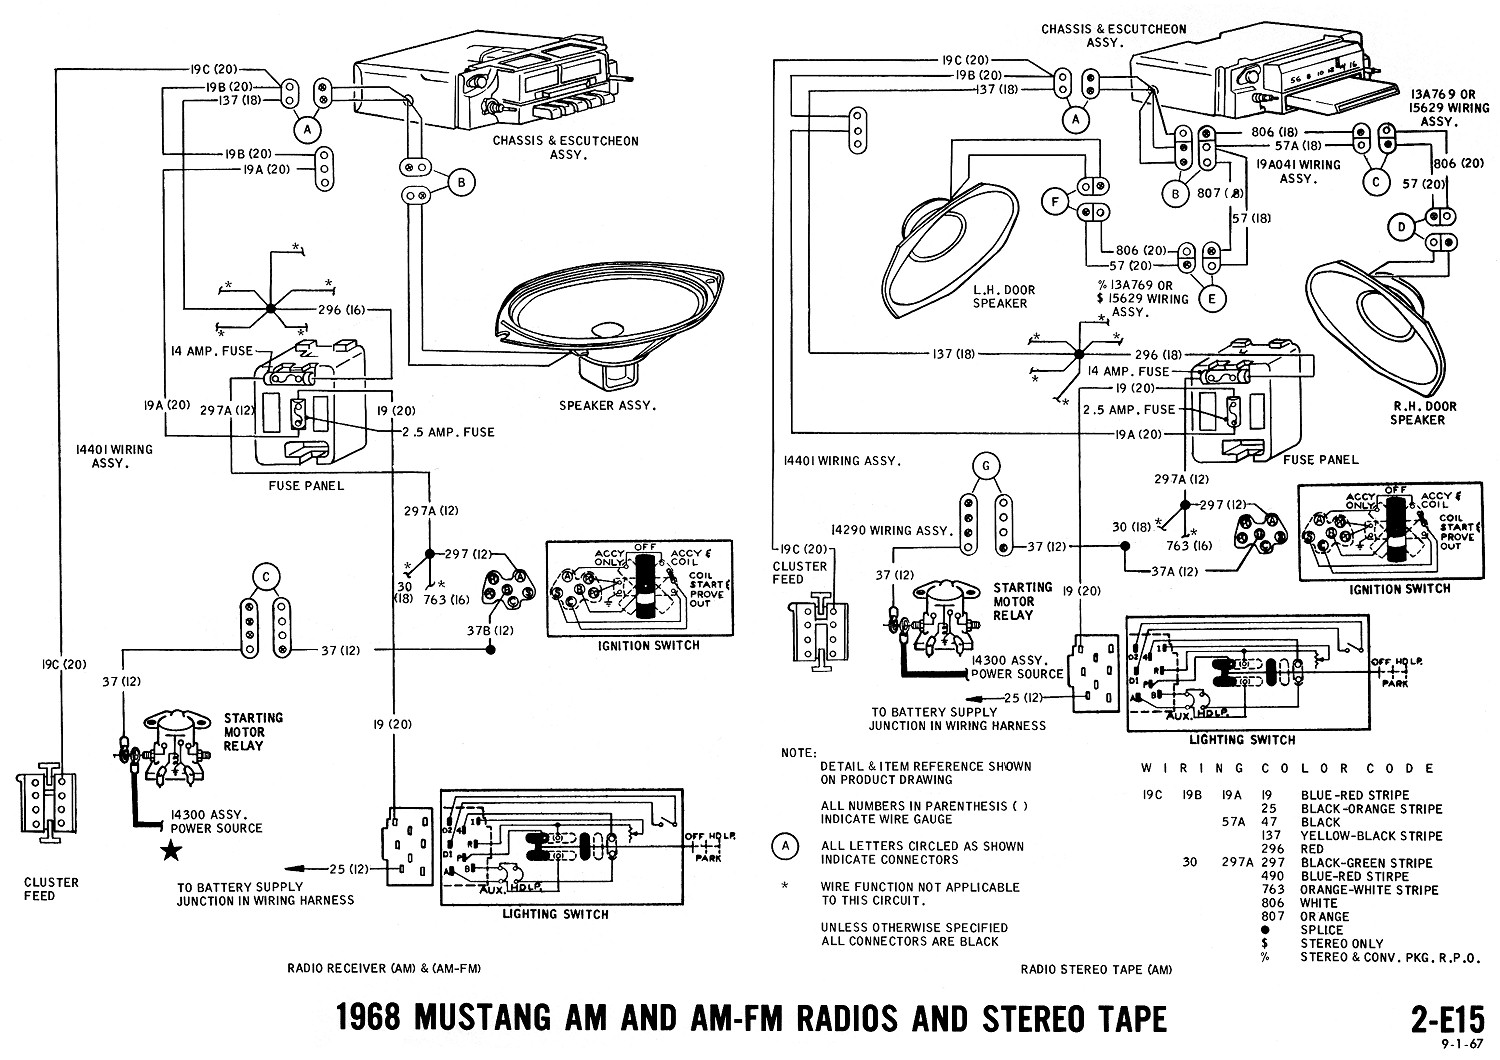 12671 2 besides 1968 Mustang Wiring Diagrams as well Lx178 Wiring Diagram in addition Exploded Diagram Of A Toyota Corolla E11 Typical Startersolenoid Assembly furthermore 760922 E40d Transmission. on f150 starter solenoid diagram